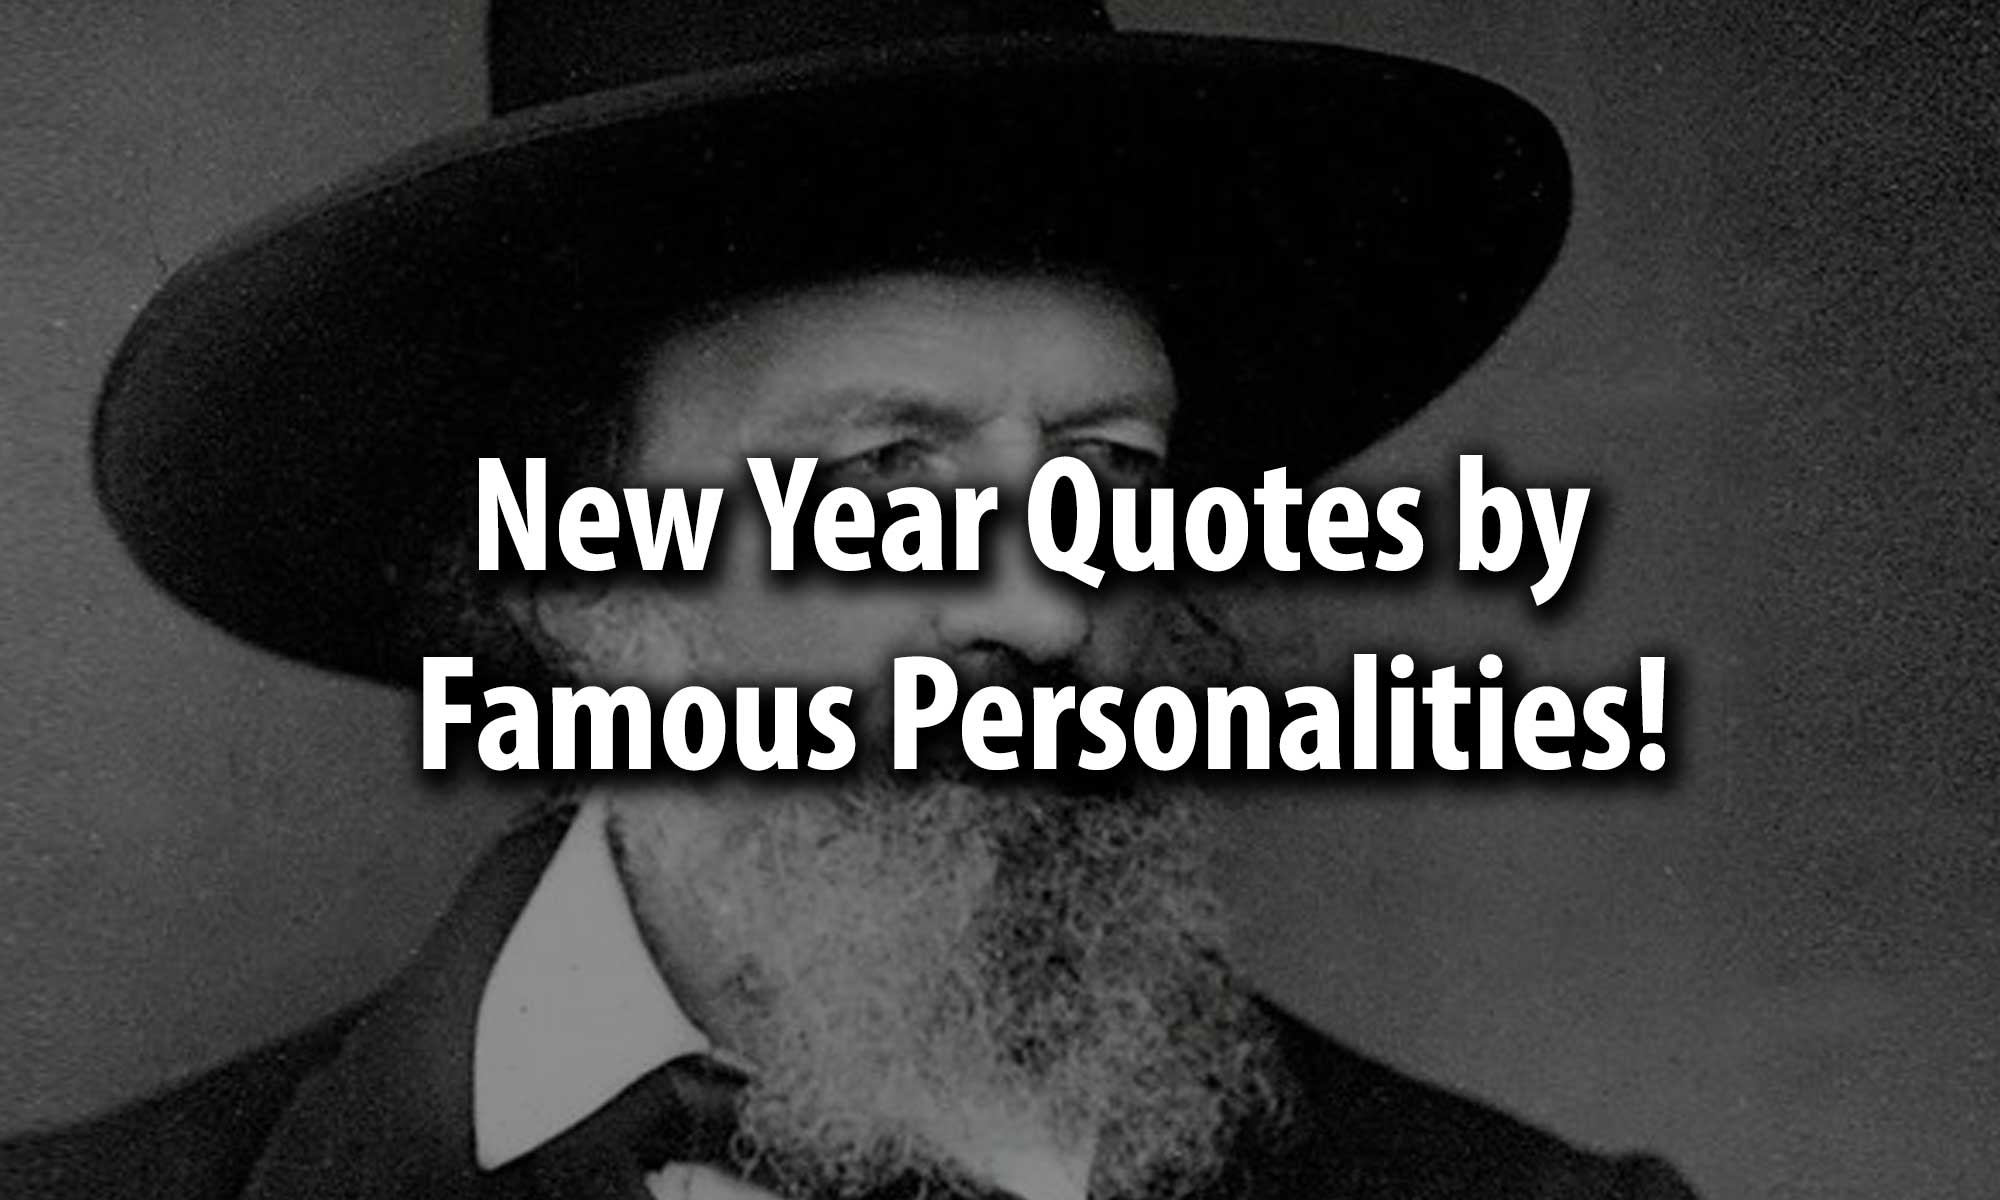 new year quotes by famous personalities